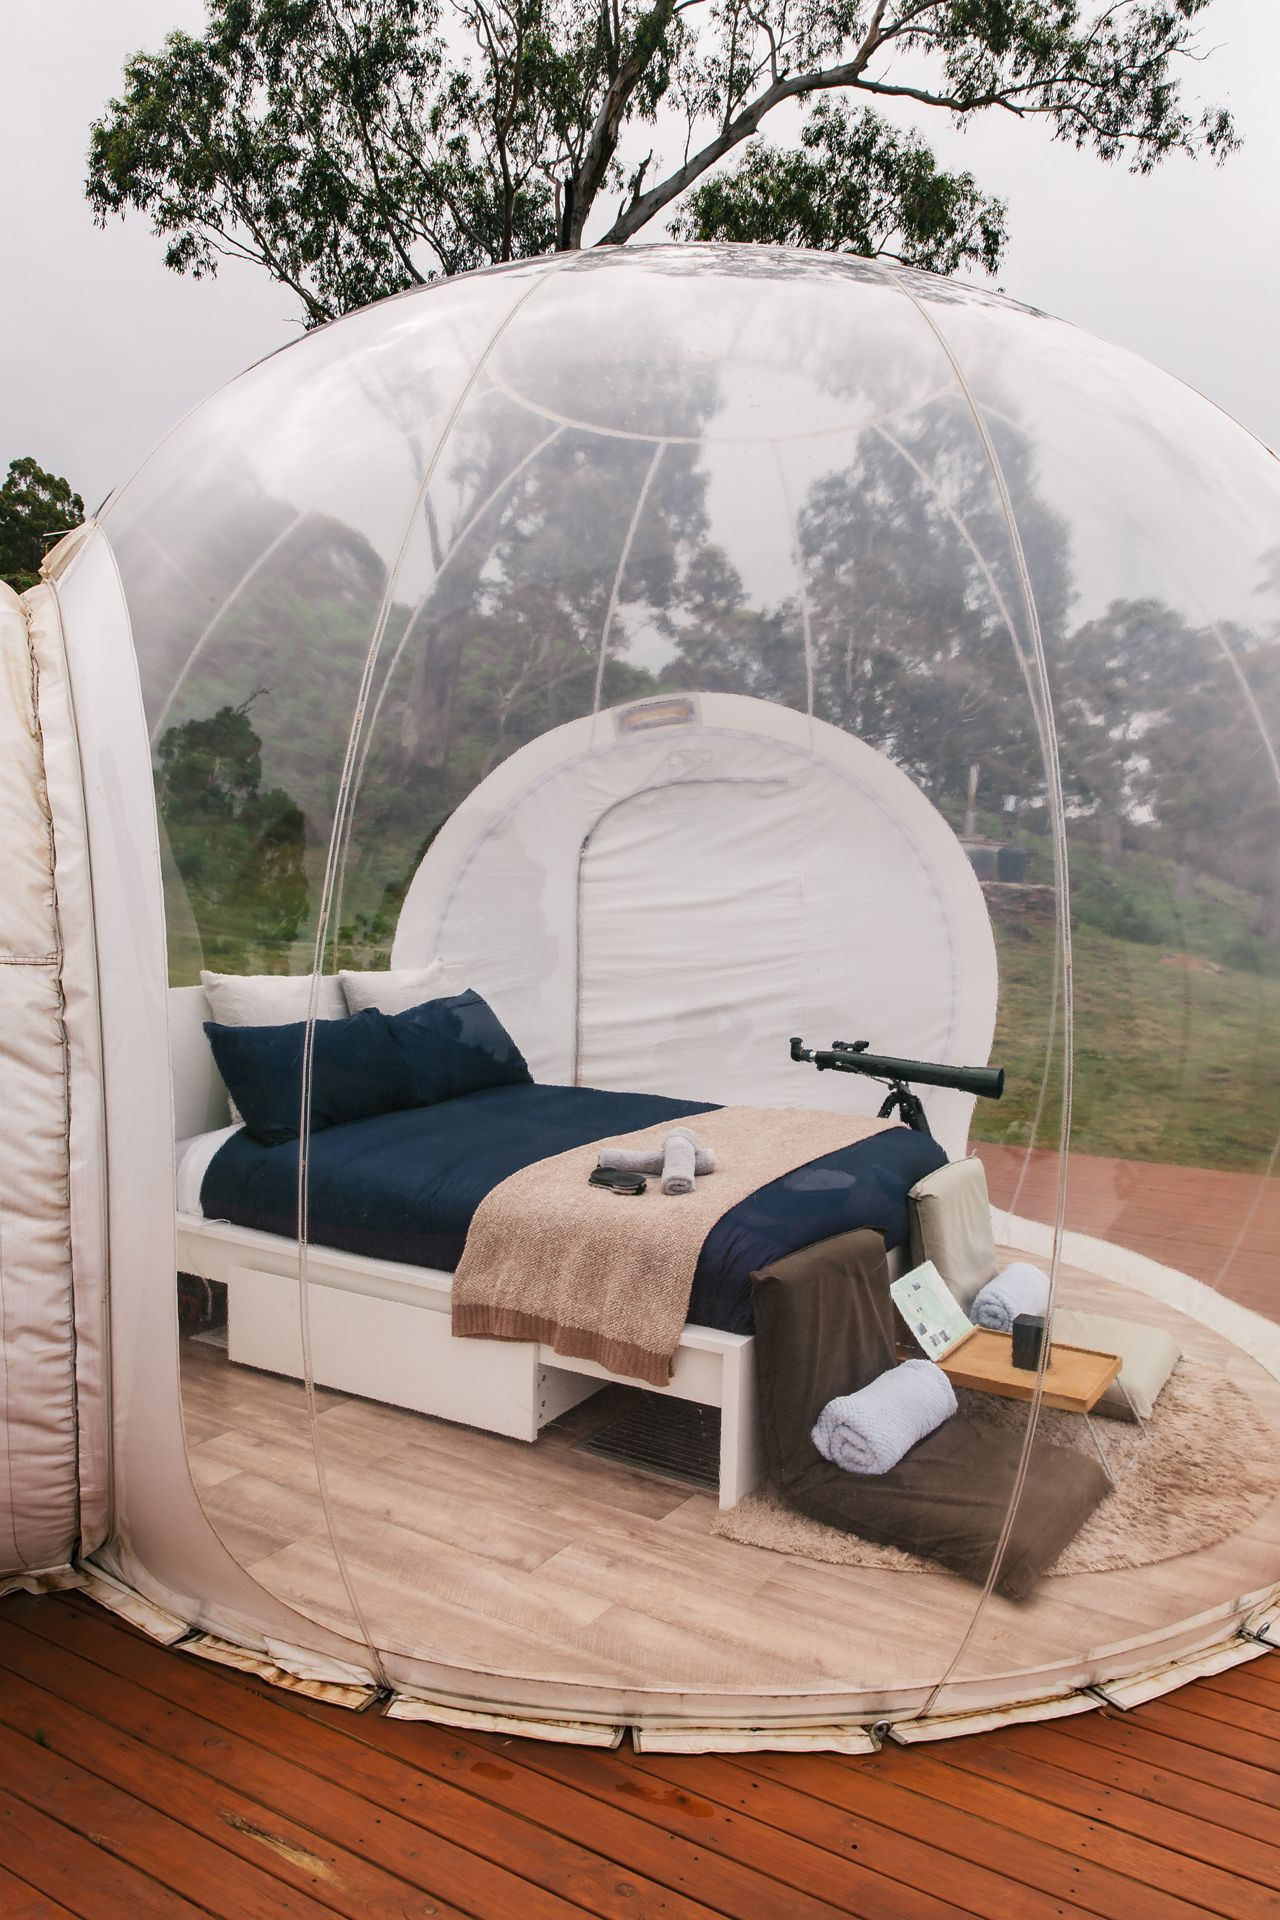 Go stargazing from the warmth of bed in Australia's first